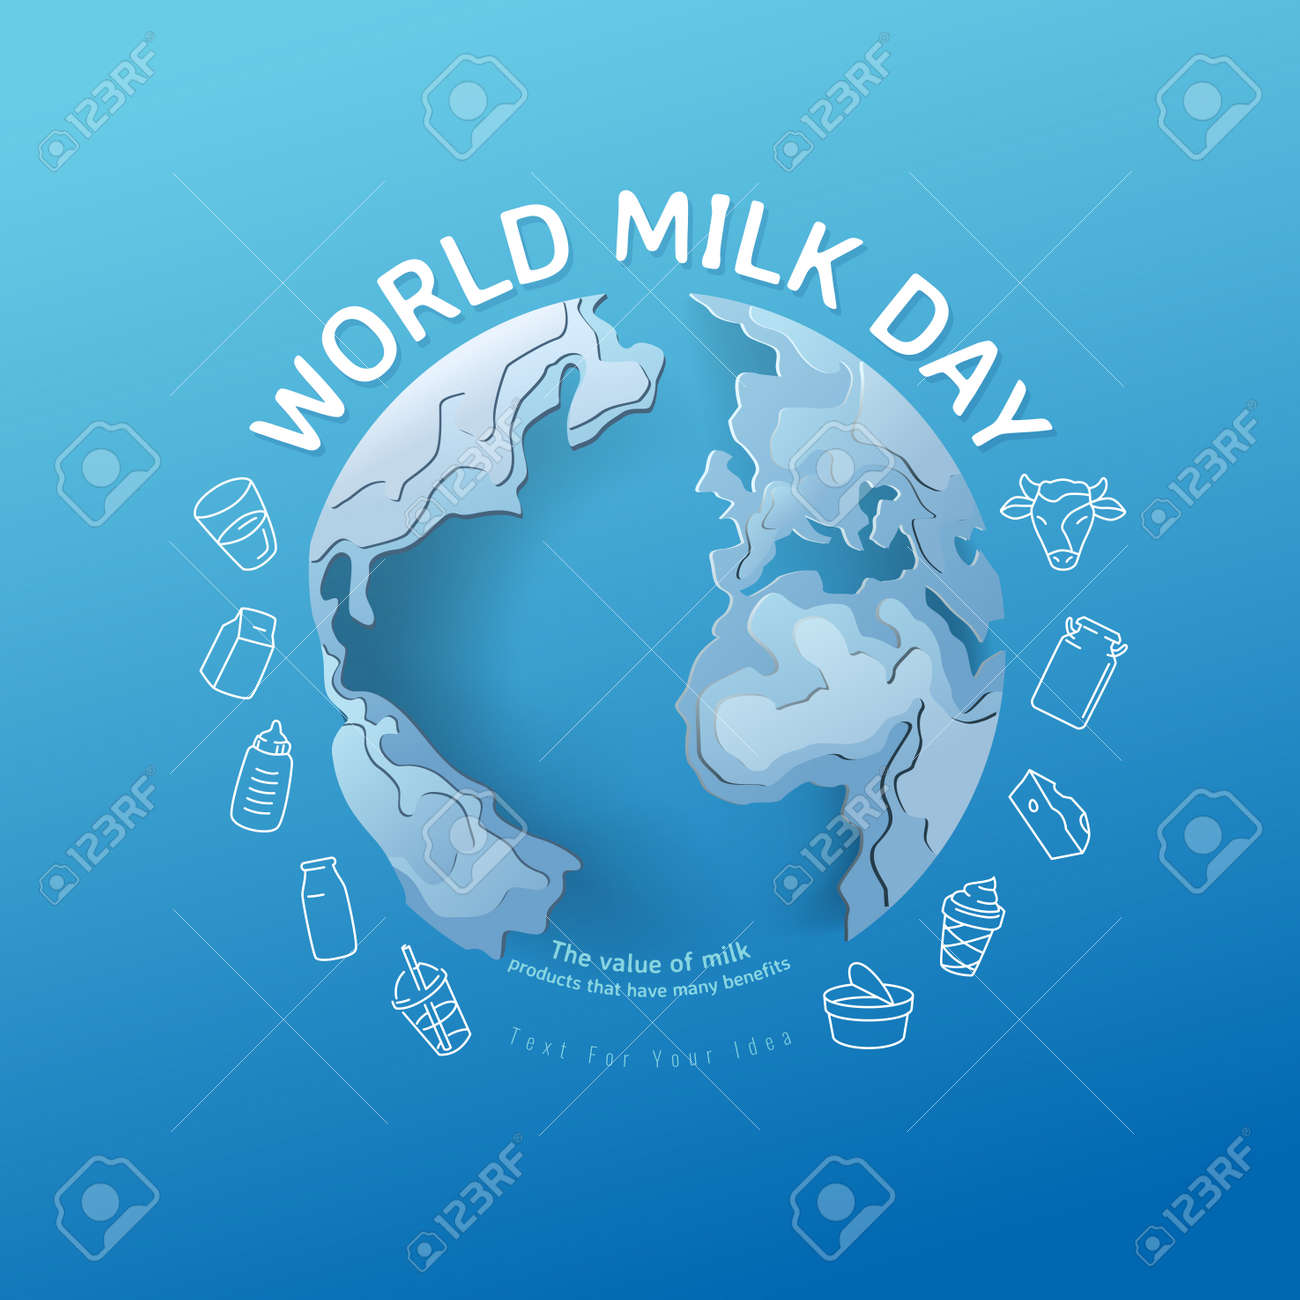 World milk day, pour milk on the world, concept for product of milk. vector illustration and design. - 171096306